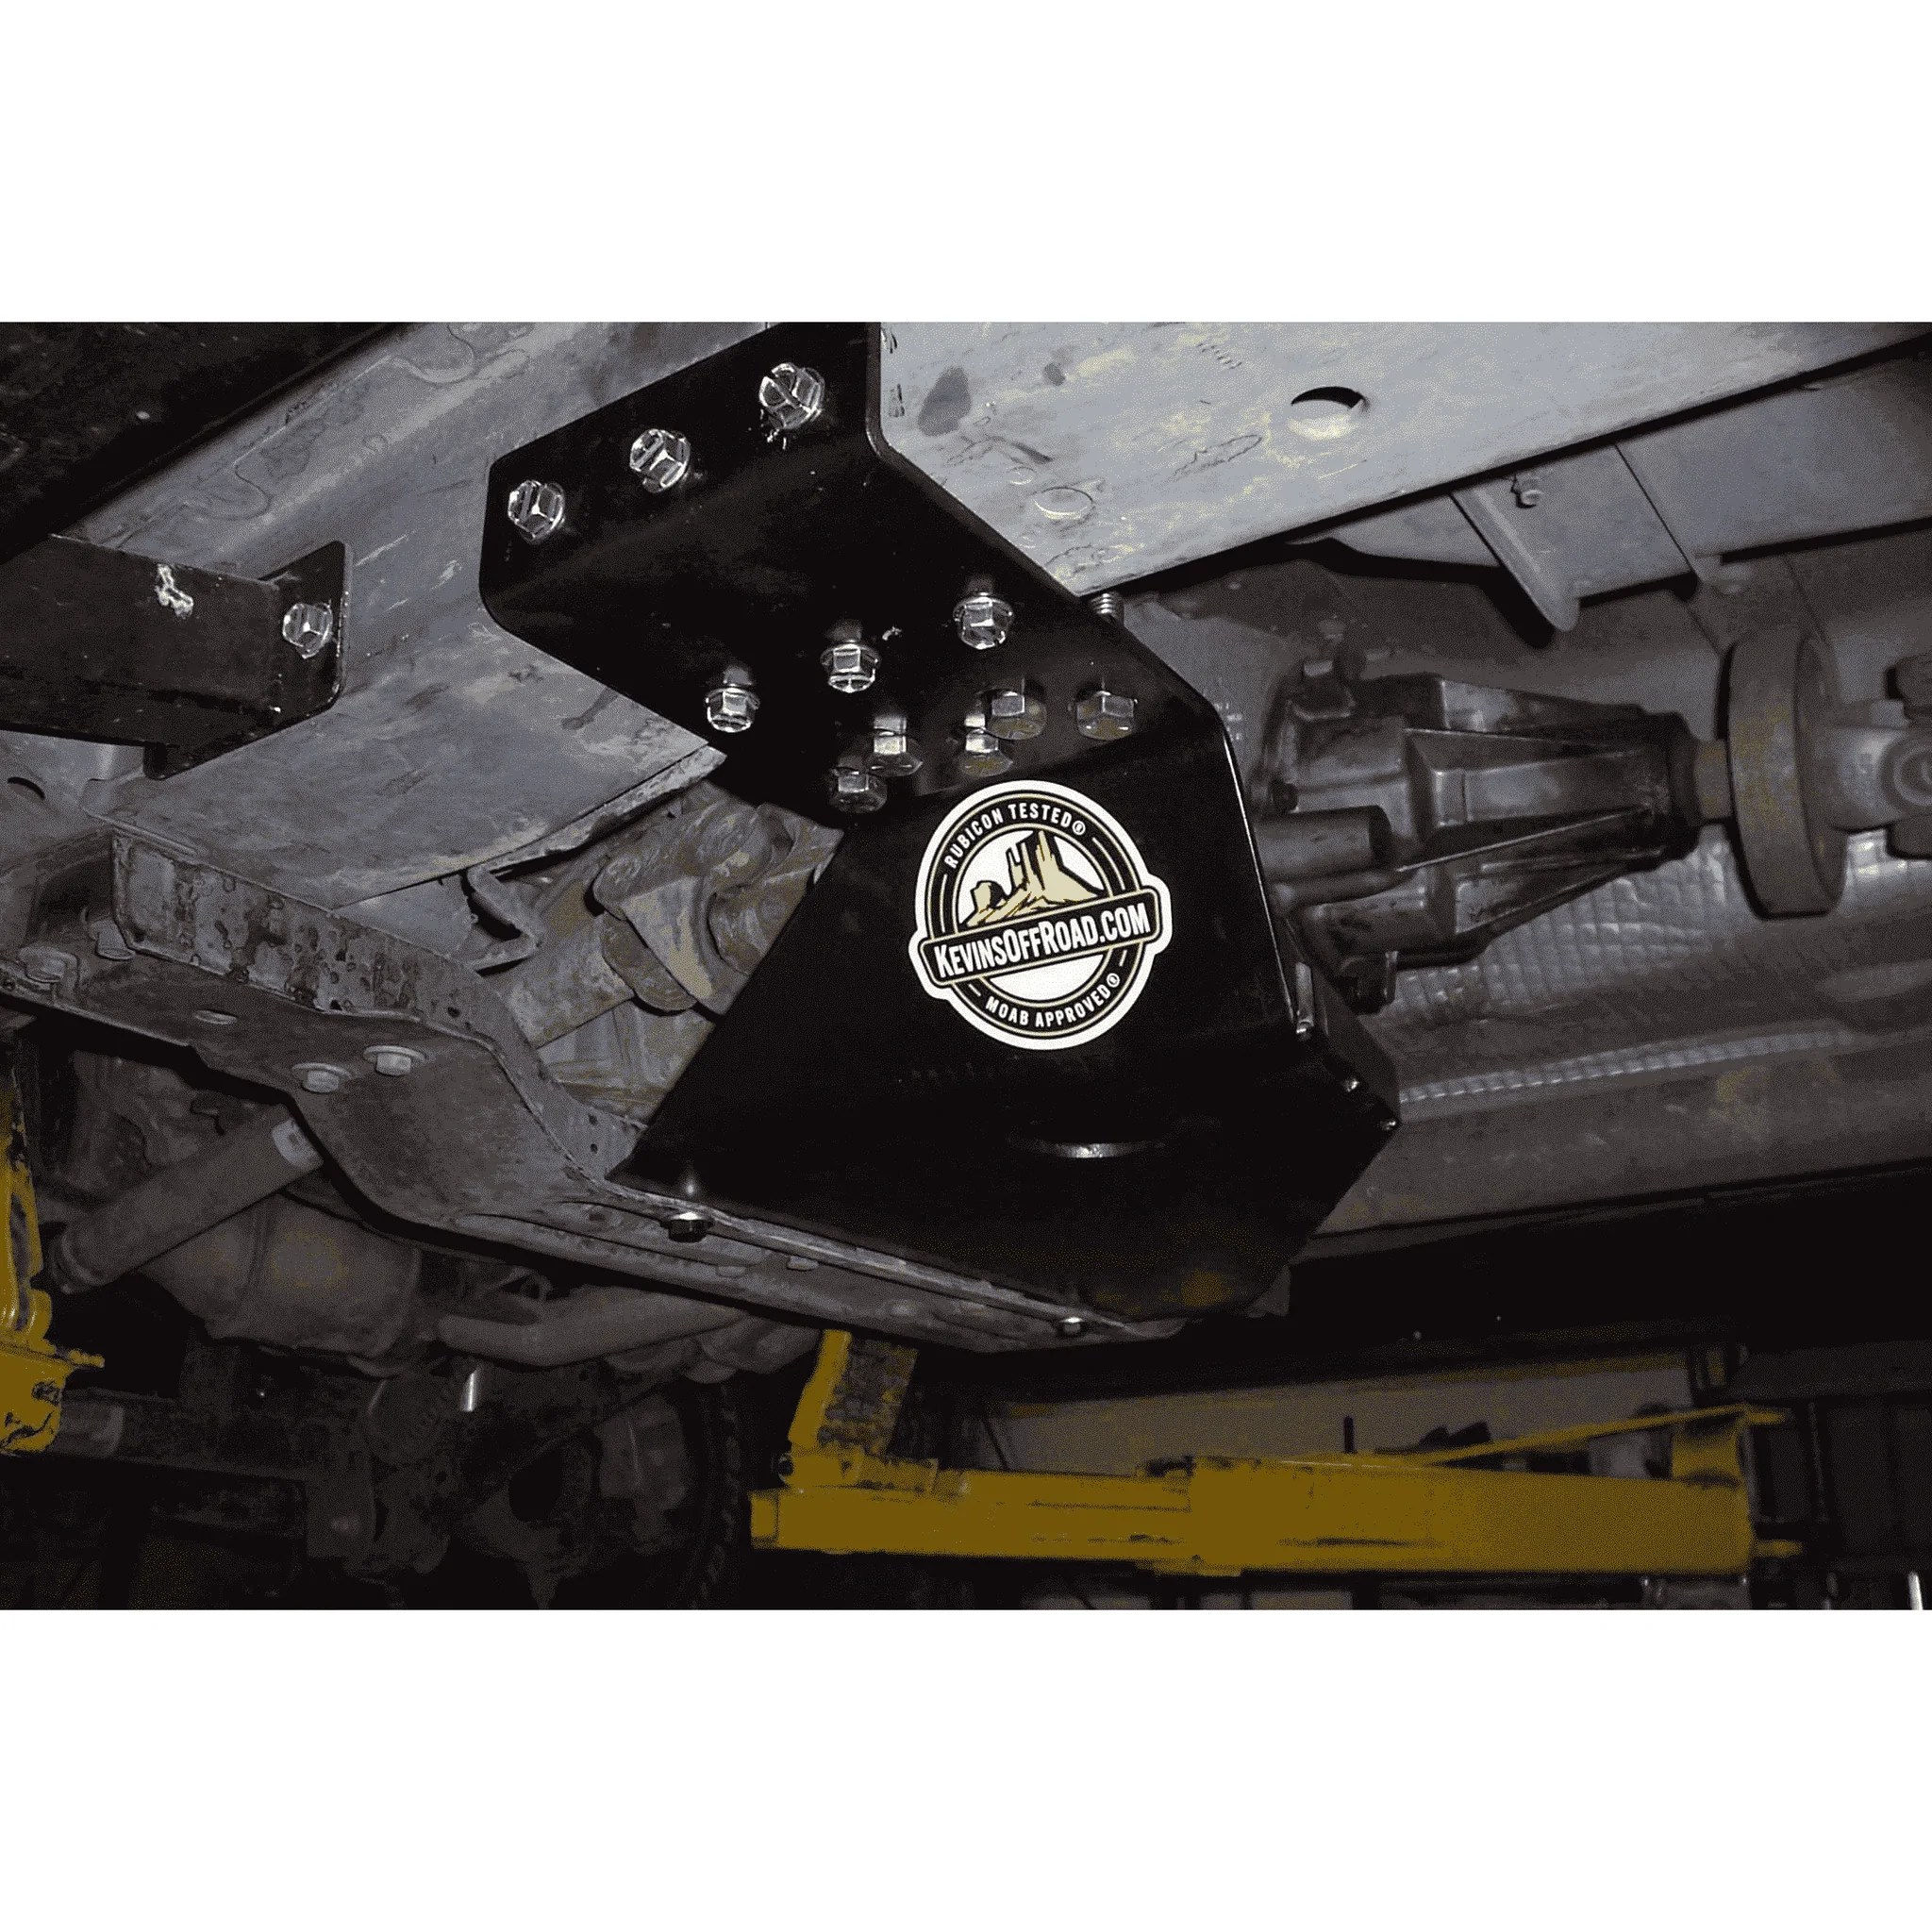 small resolution of jeep grand cherokee wj transfer case skid plate kor 7102 kevinsoffroad com